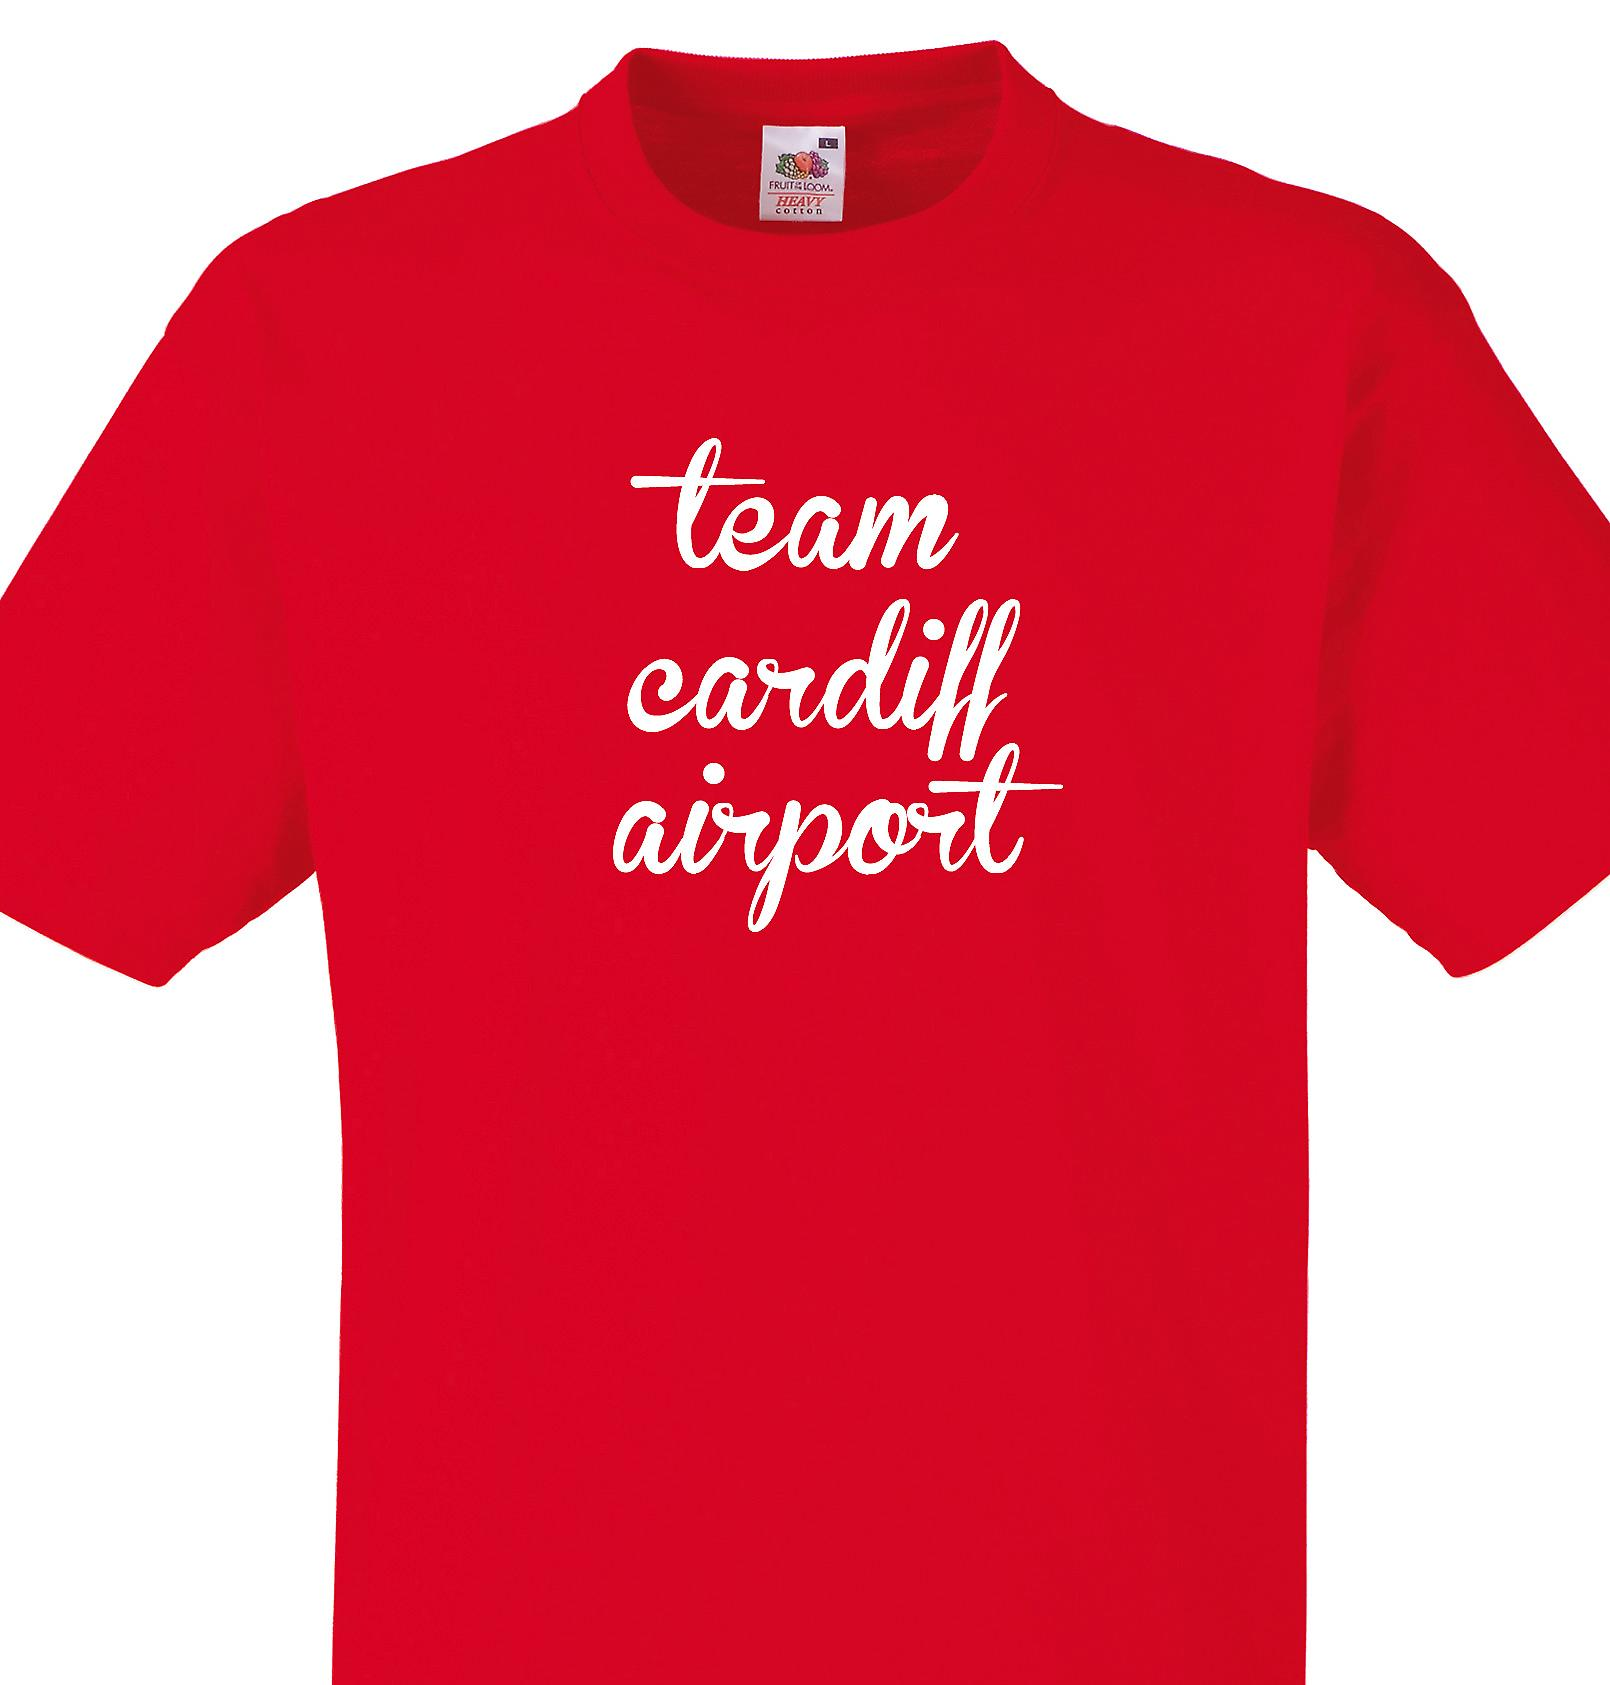 Team Cardiff airport Red T shirt